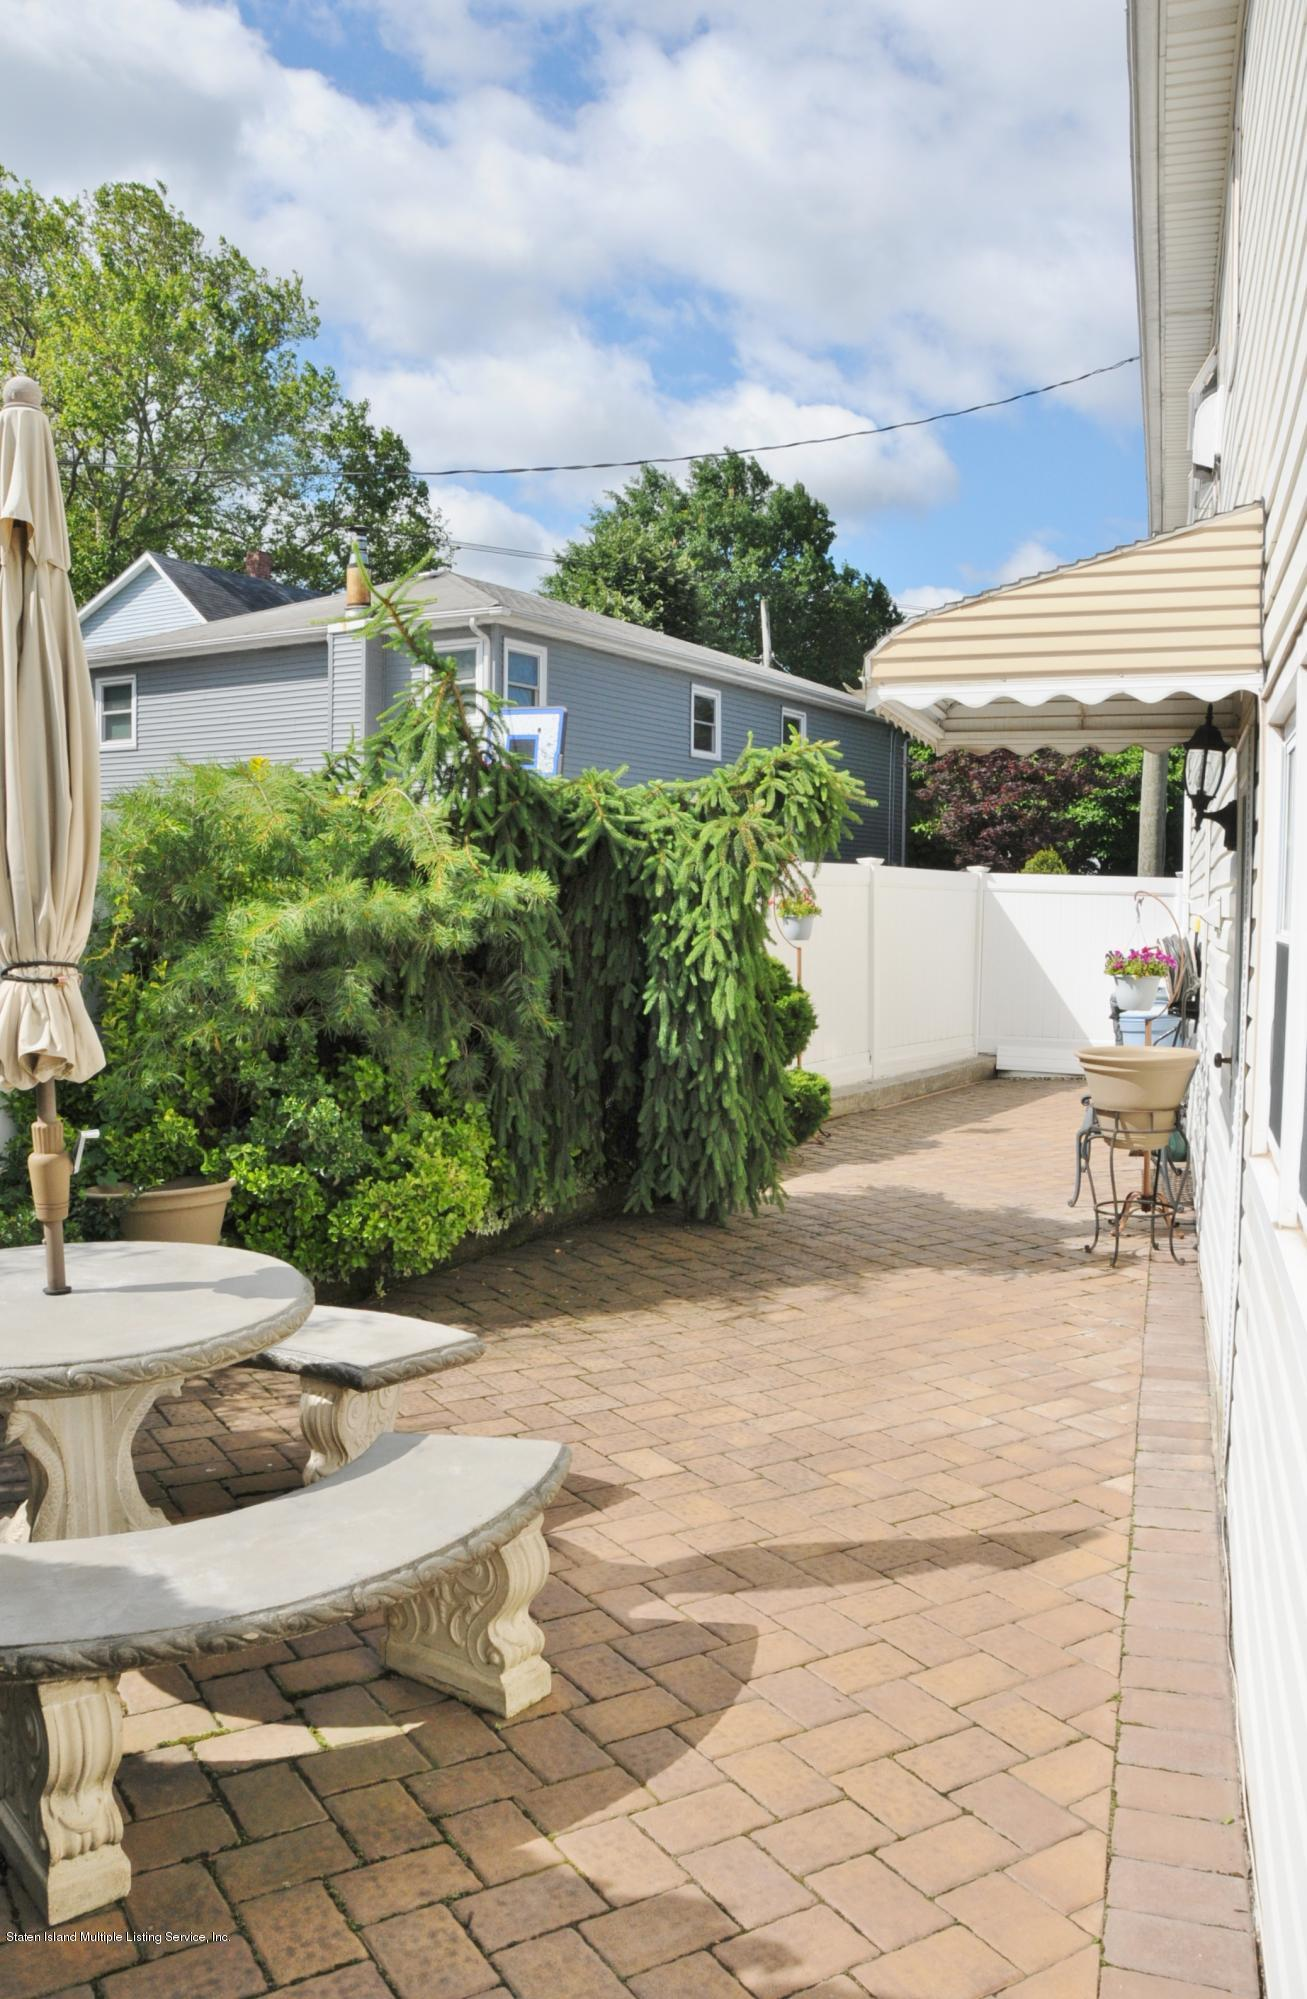 Single Family - Detached 41 Prices Lane  Staten Island, NY 10314, MLS-1129754-51